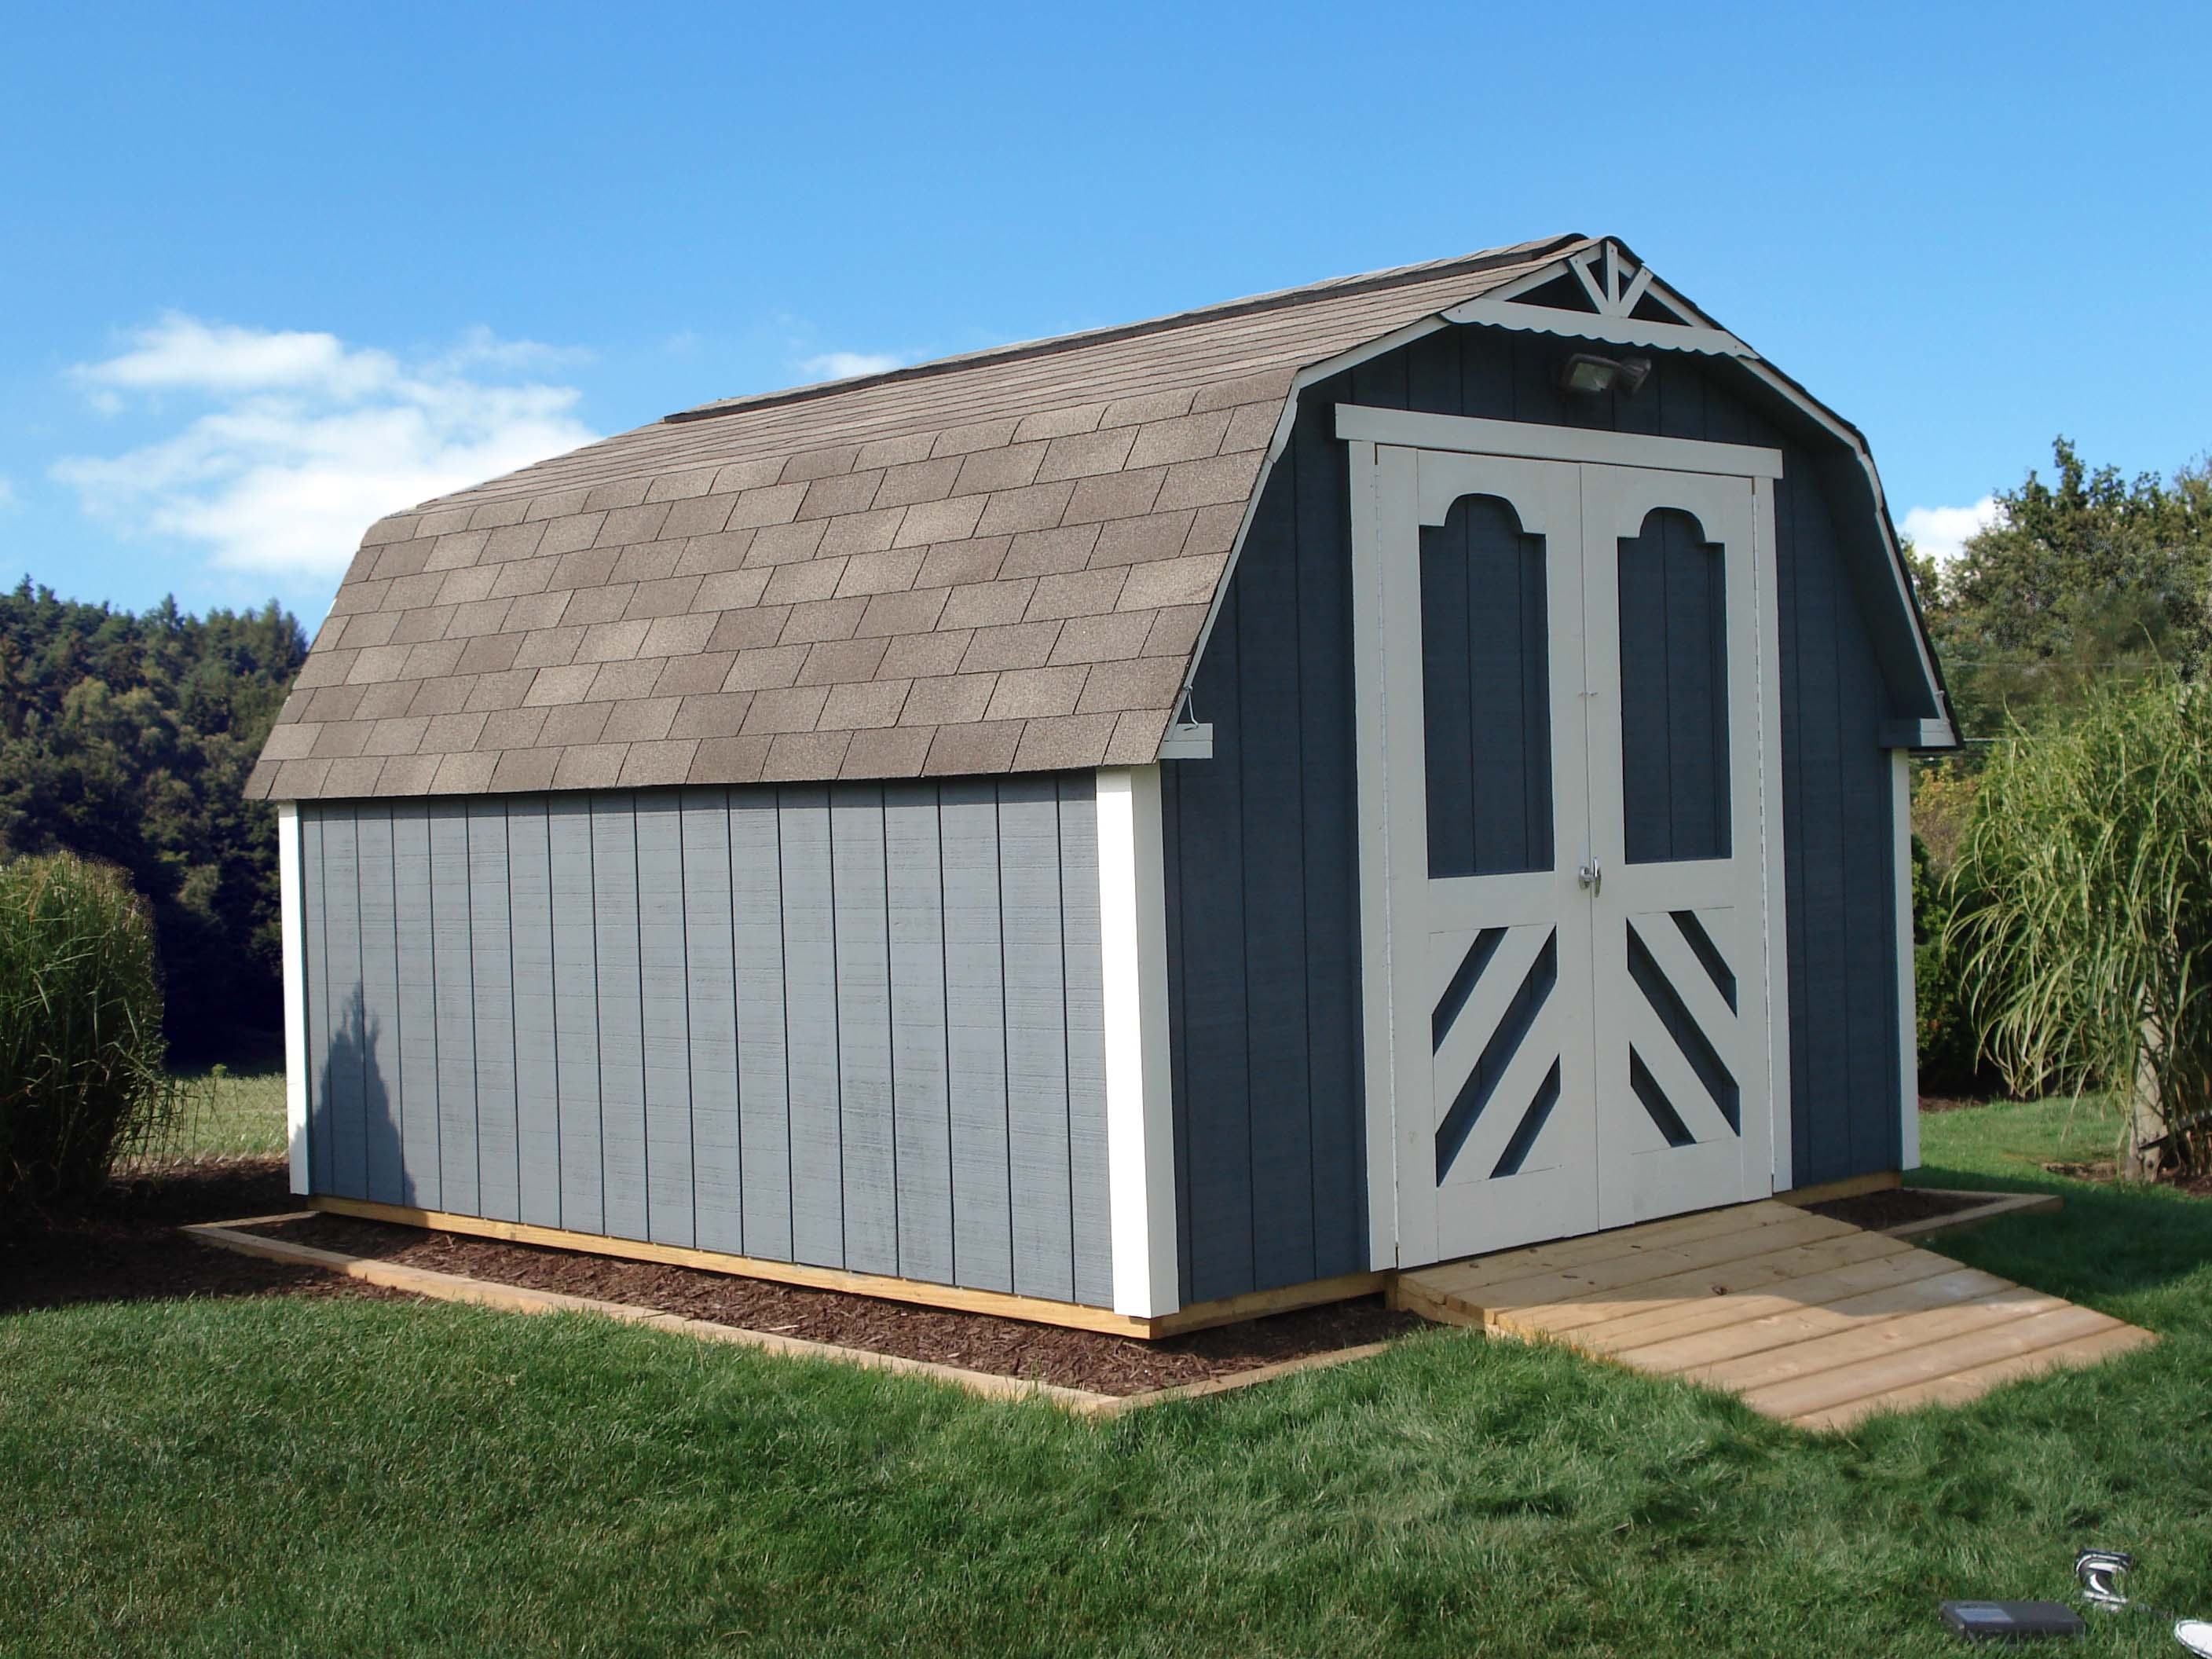 barn your barns com solutions storage morgancameronross gallery l backyard shed